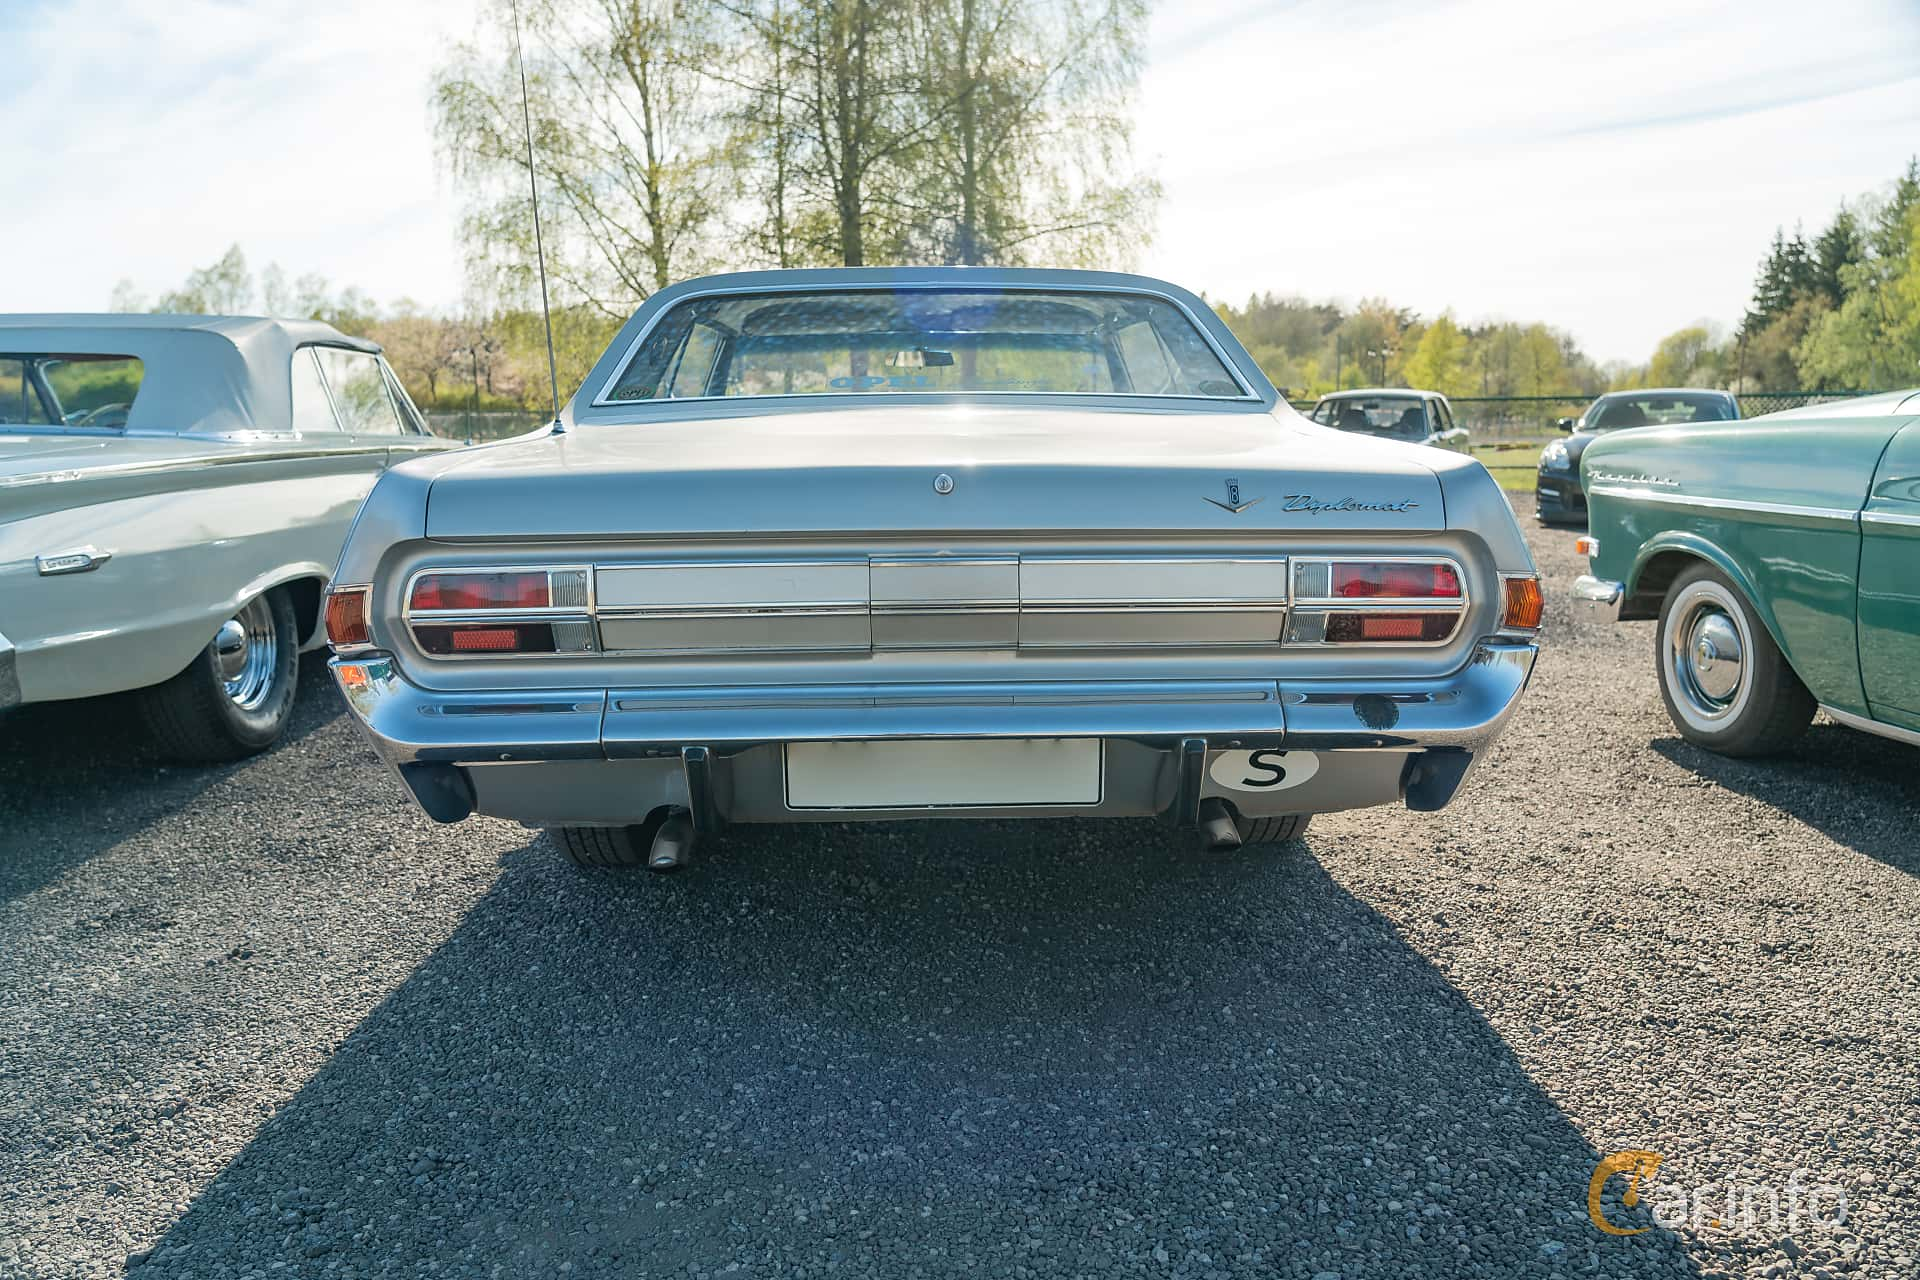 Opel Diplomat 4.6 V8 Manual, 190hp, 1966 at Lissma Classic Car 2019 vecka 20